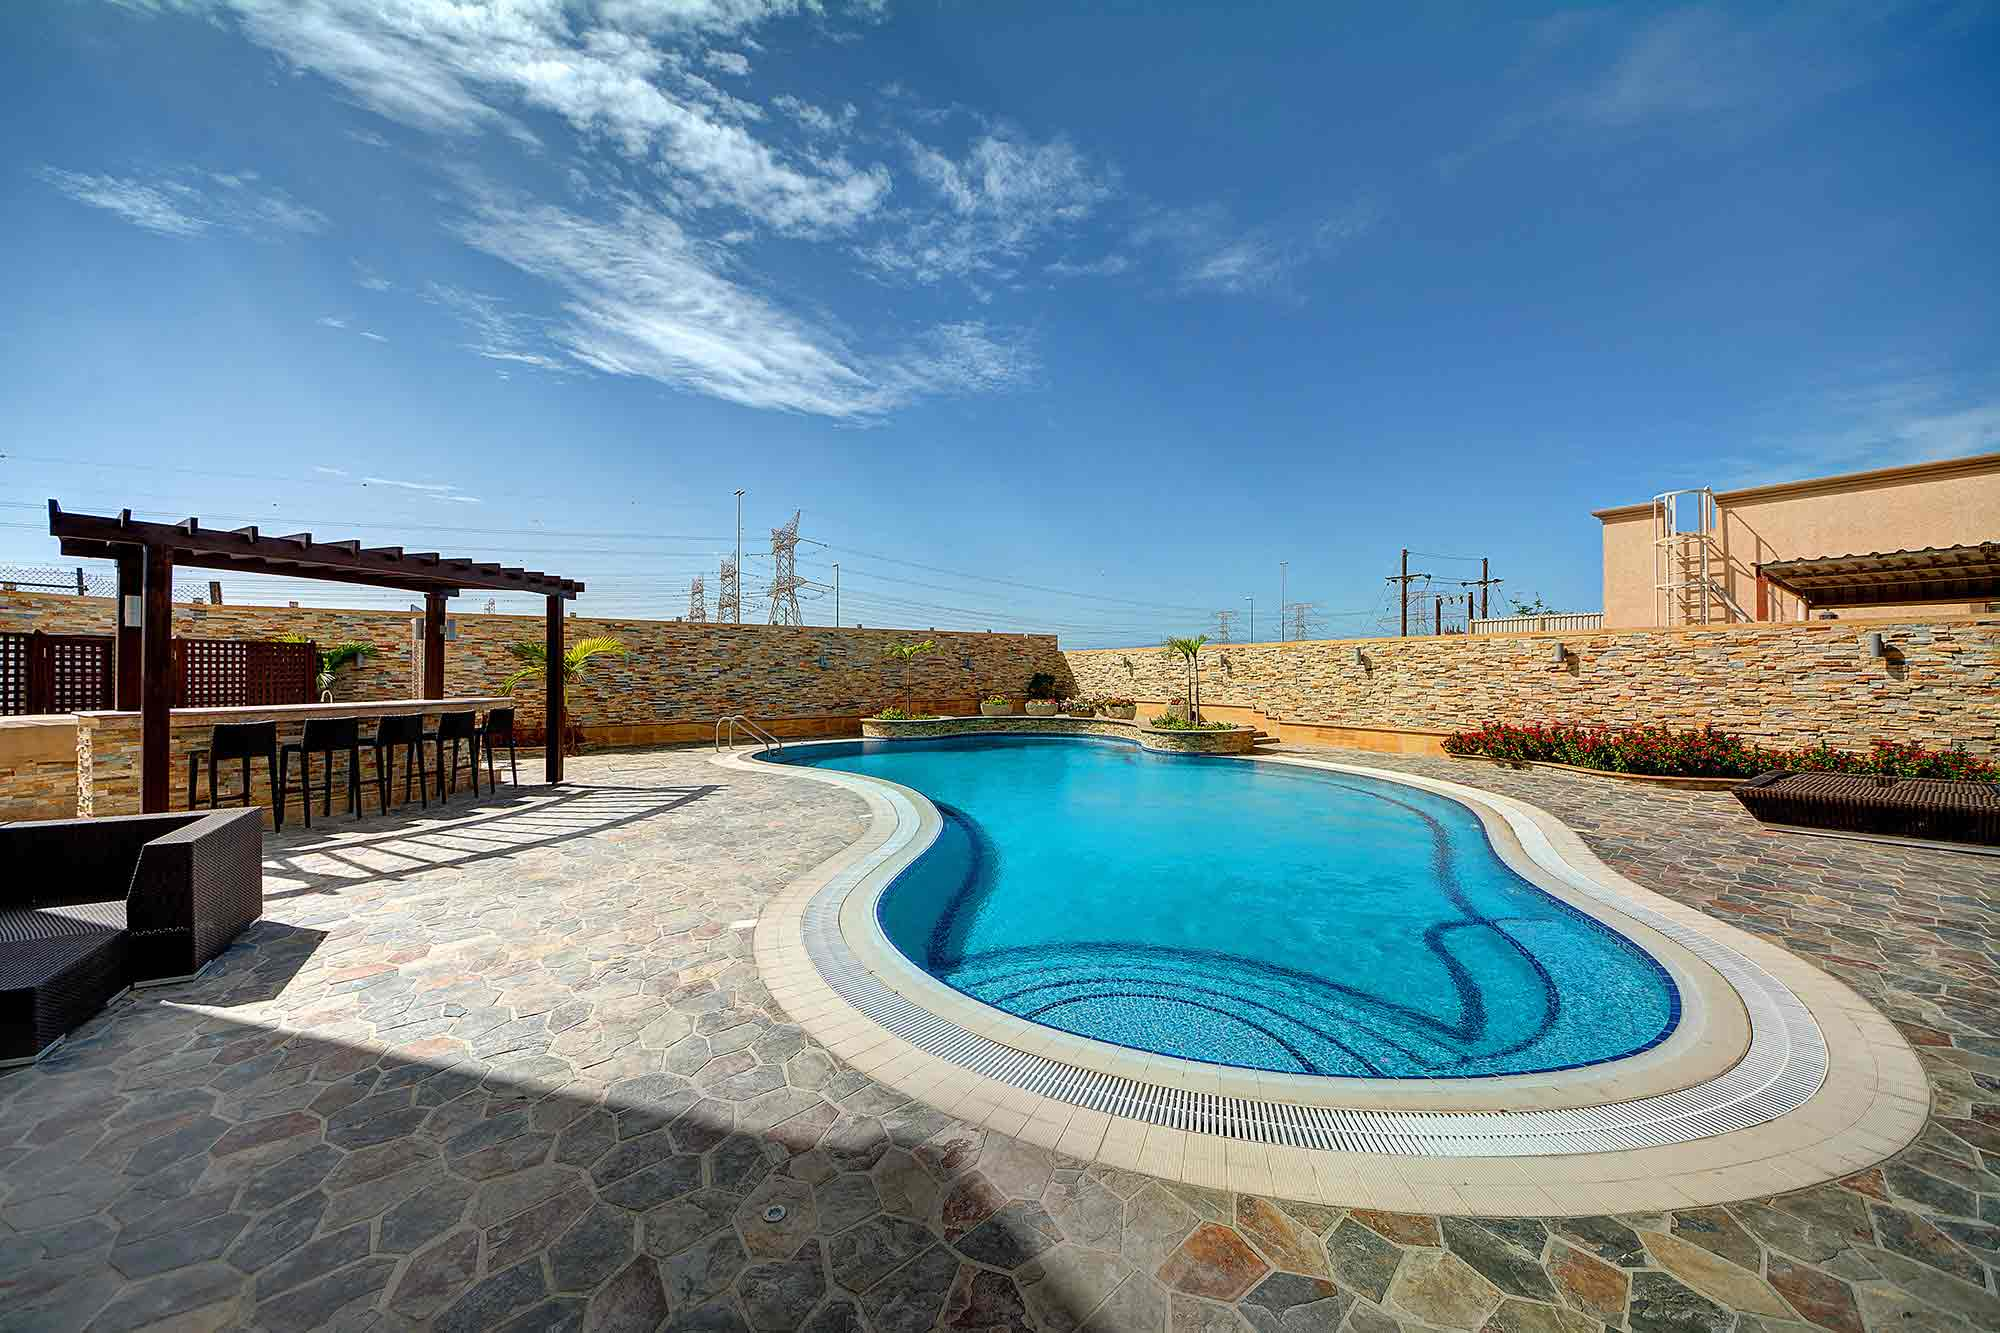 Pools R Us Dubai Gallery Swimming Pool In Dubai Pool Construction Dubai Pool Design Dubai